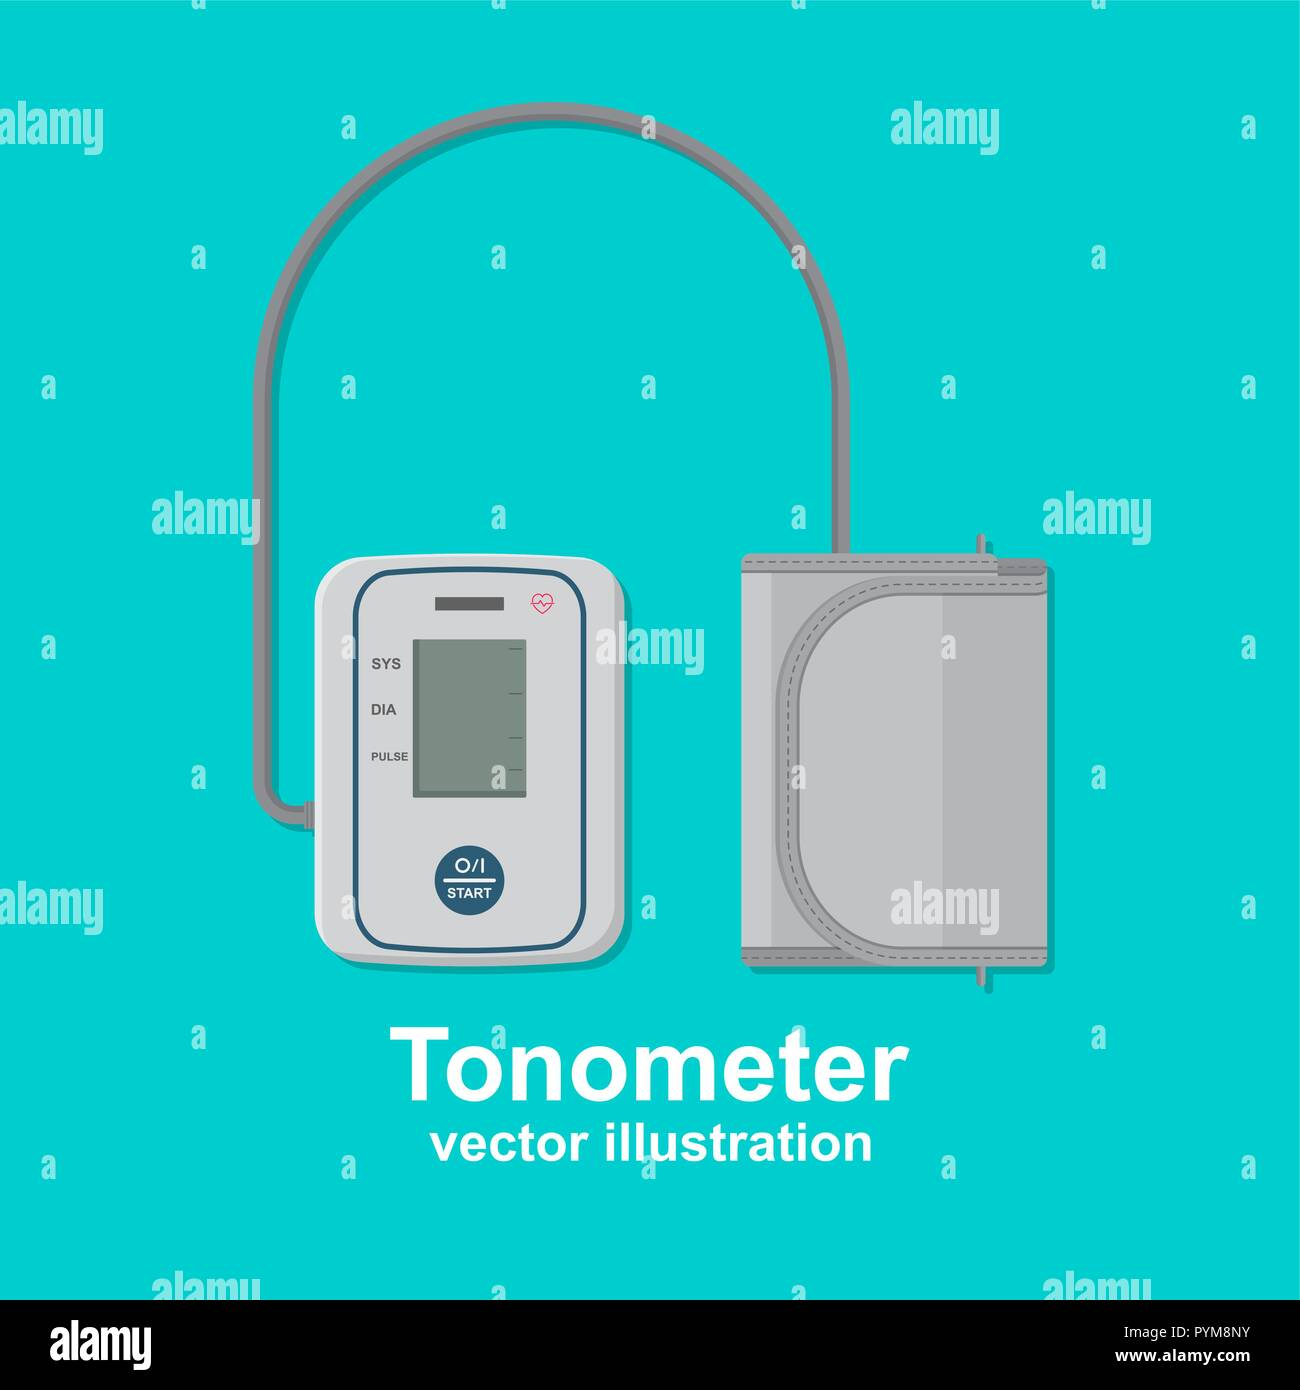 Digital tonometer. Icon of the device for measurement of arterial pressure. A vector illustration in flat style. - Stock Image